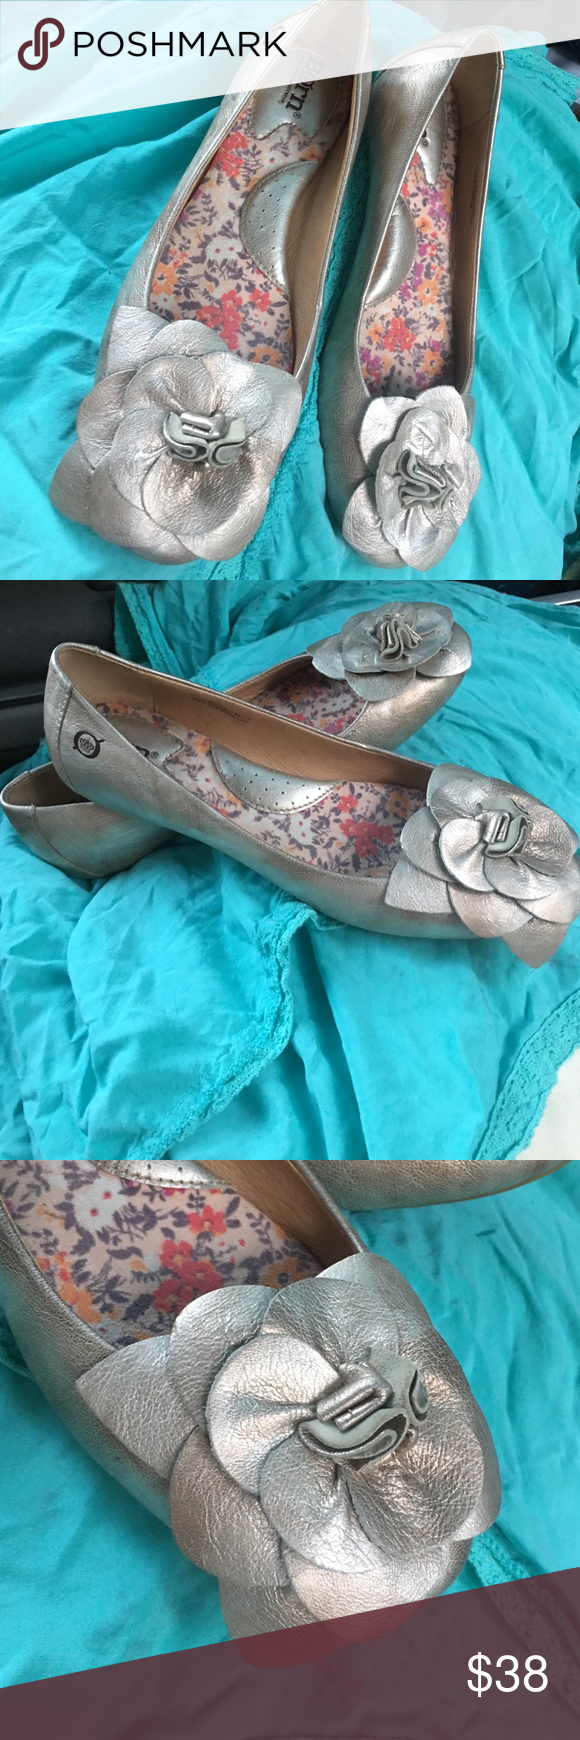 born leather flats Adorable high-end born brand flats. Champagne metallic color. Good preowned condition with minimal signs of wear. Made for comfort! Size 7 1/2 Born Shoes Flats & Loafers